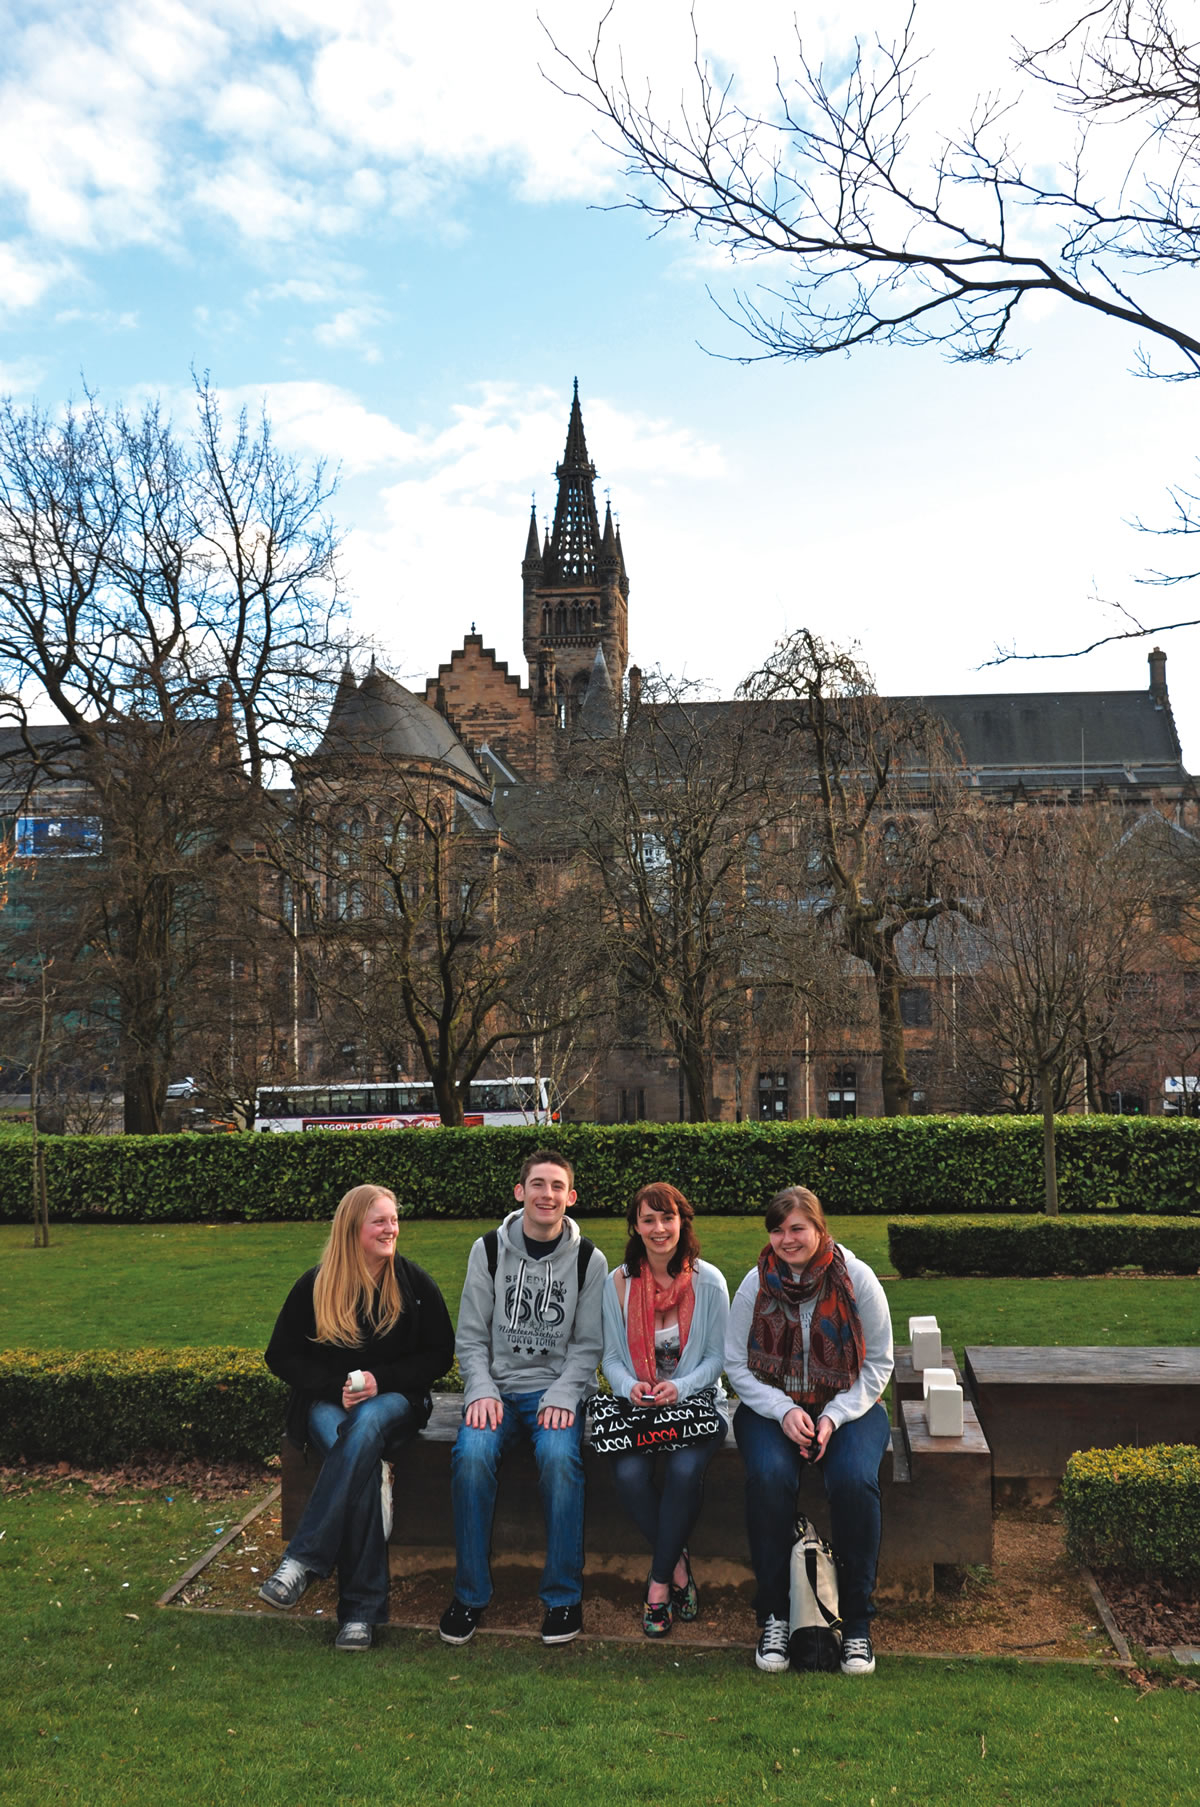 University Study In The United Kingdom: University Of Throughout University Of Glasgow Academic Calender 2021